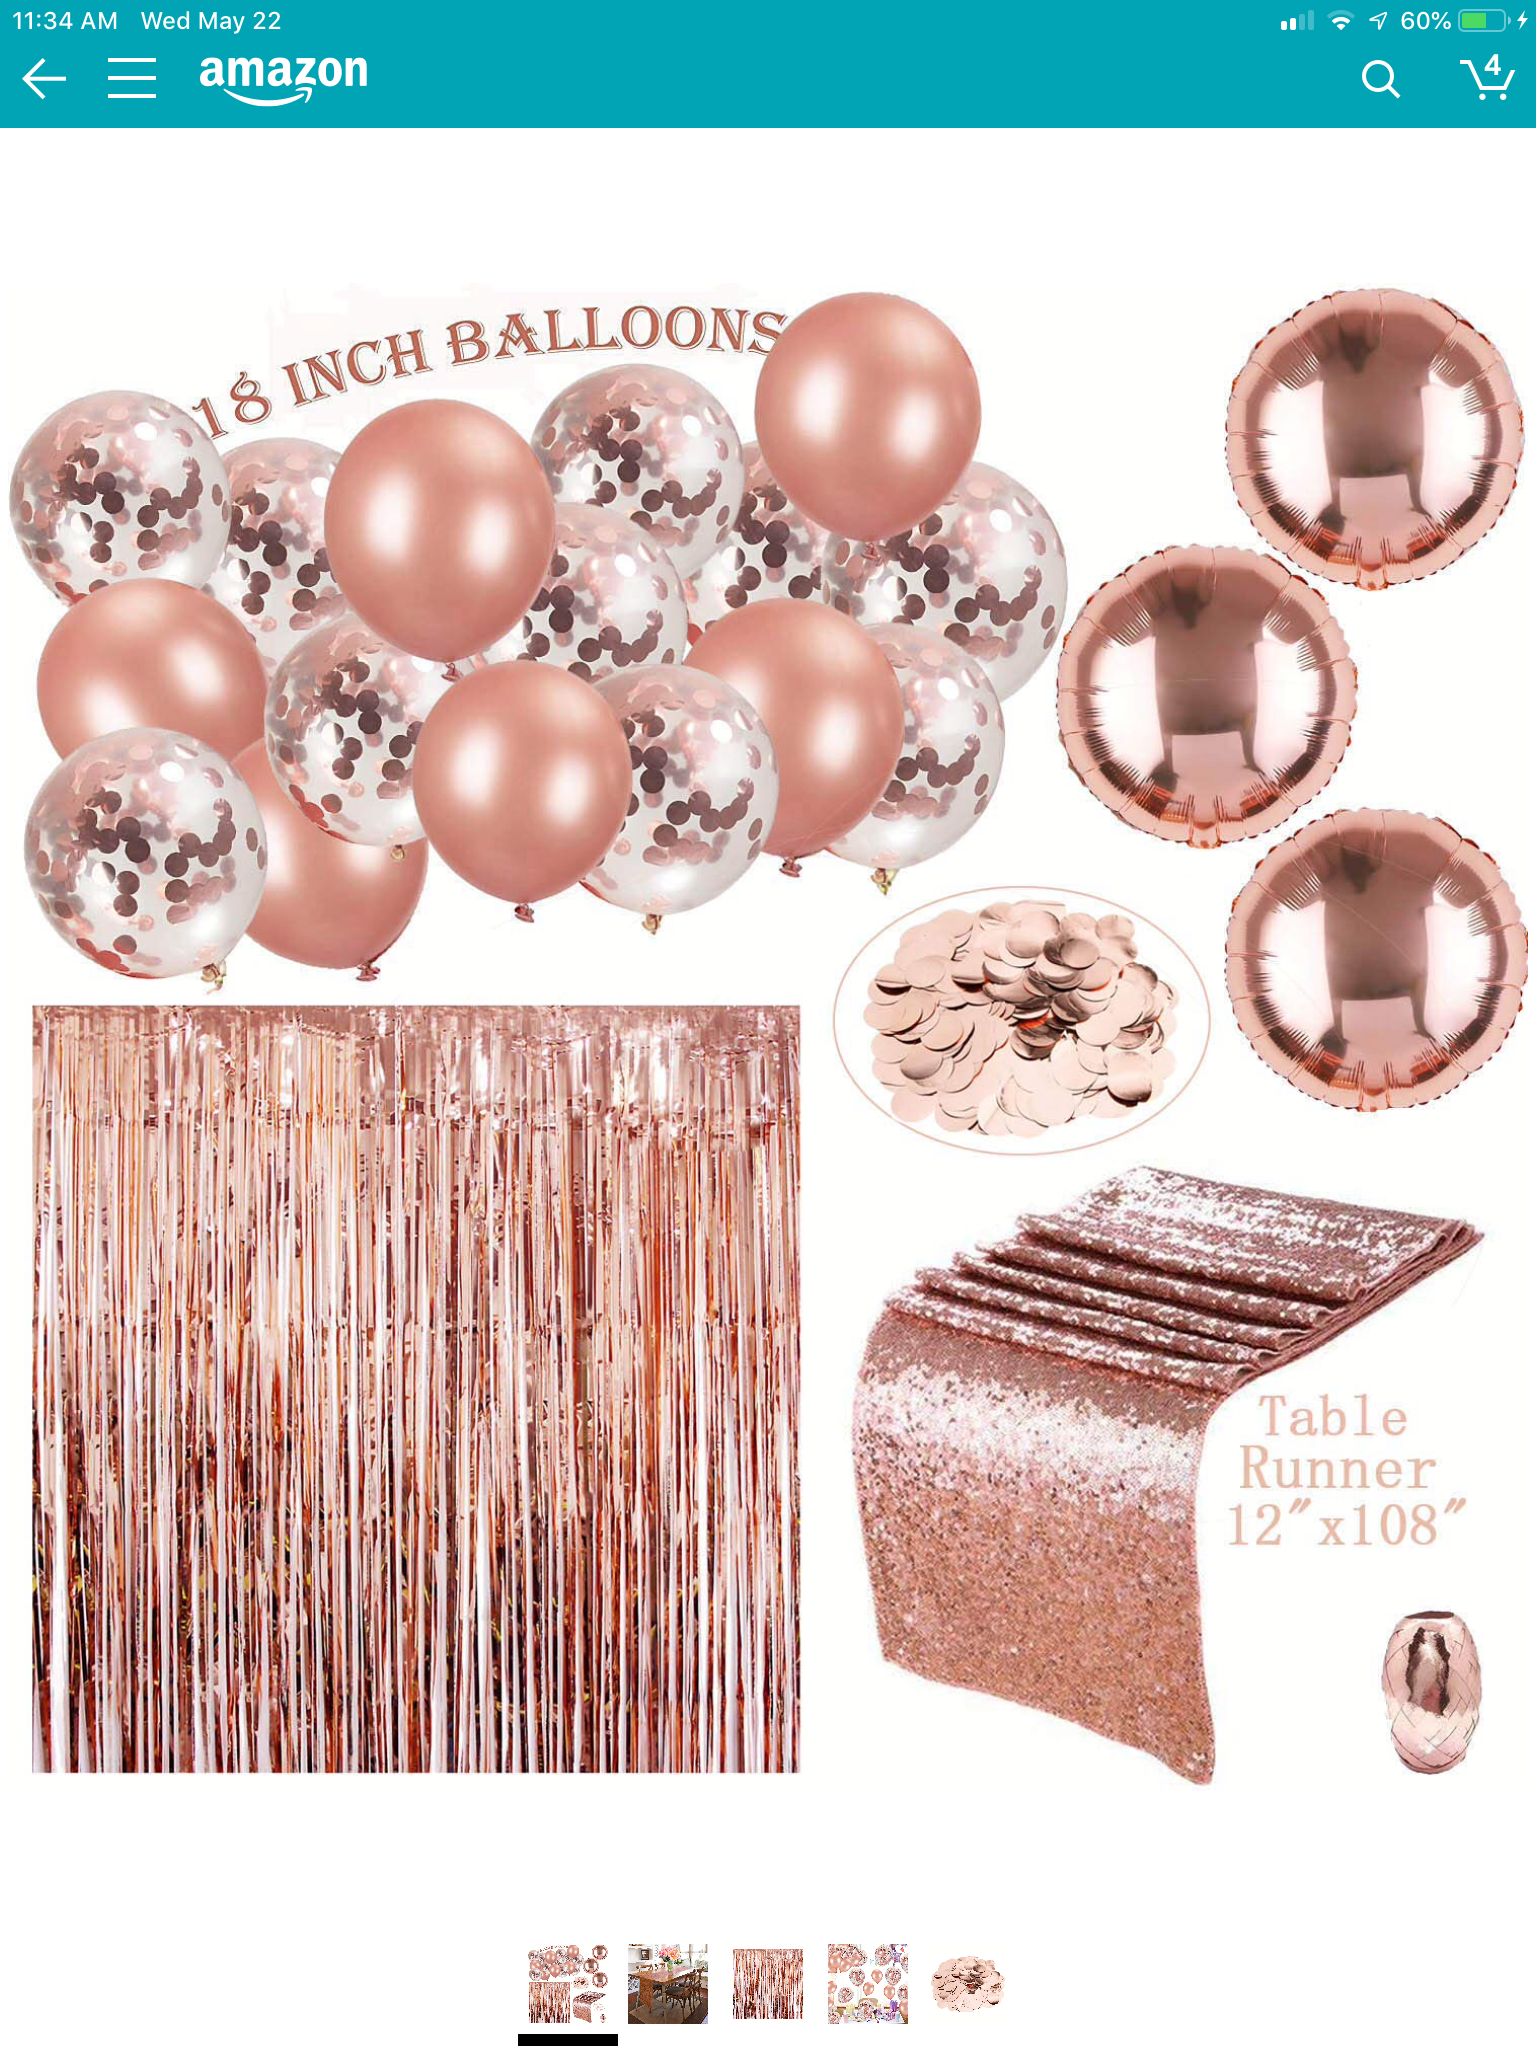 Pin By Zoe Nuijens On First Birthday Rose Gold Party Decor Rose Gold Party Gold Party Decorations